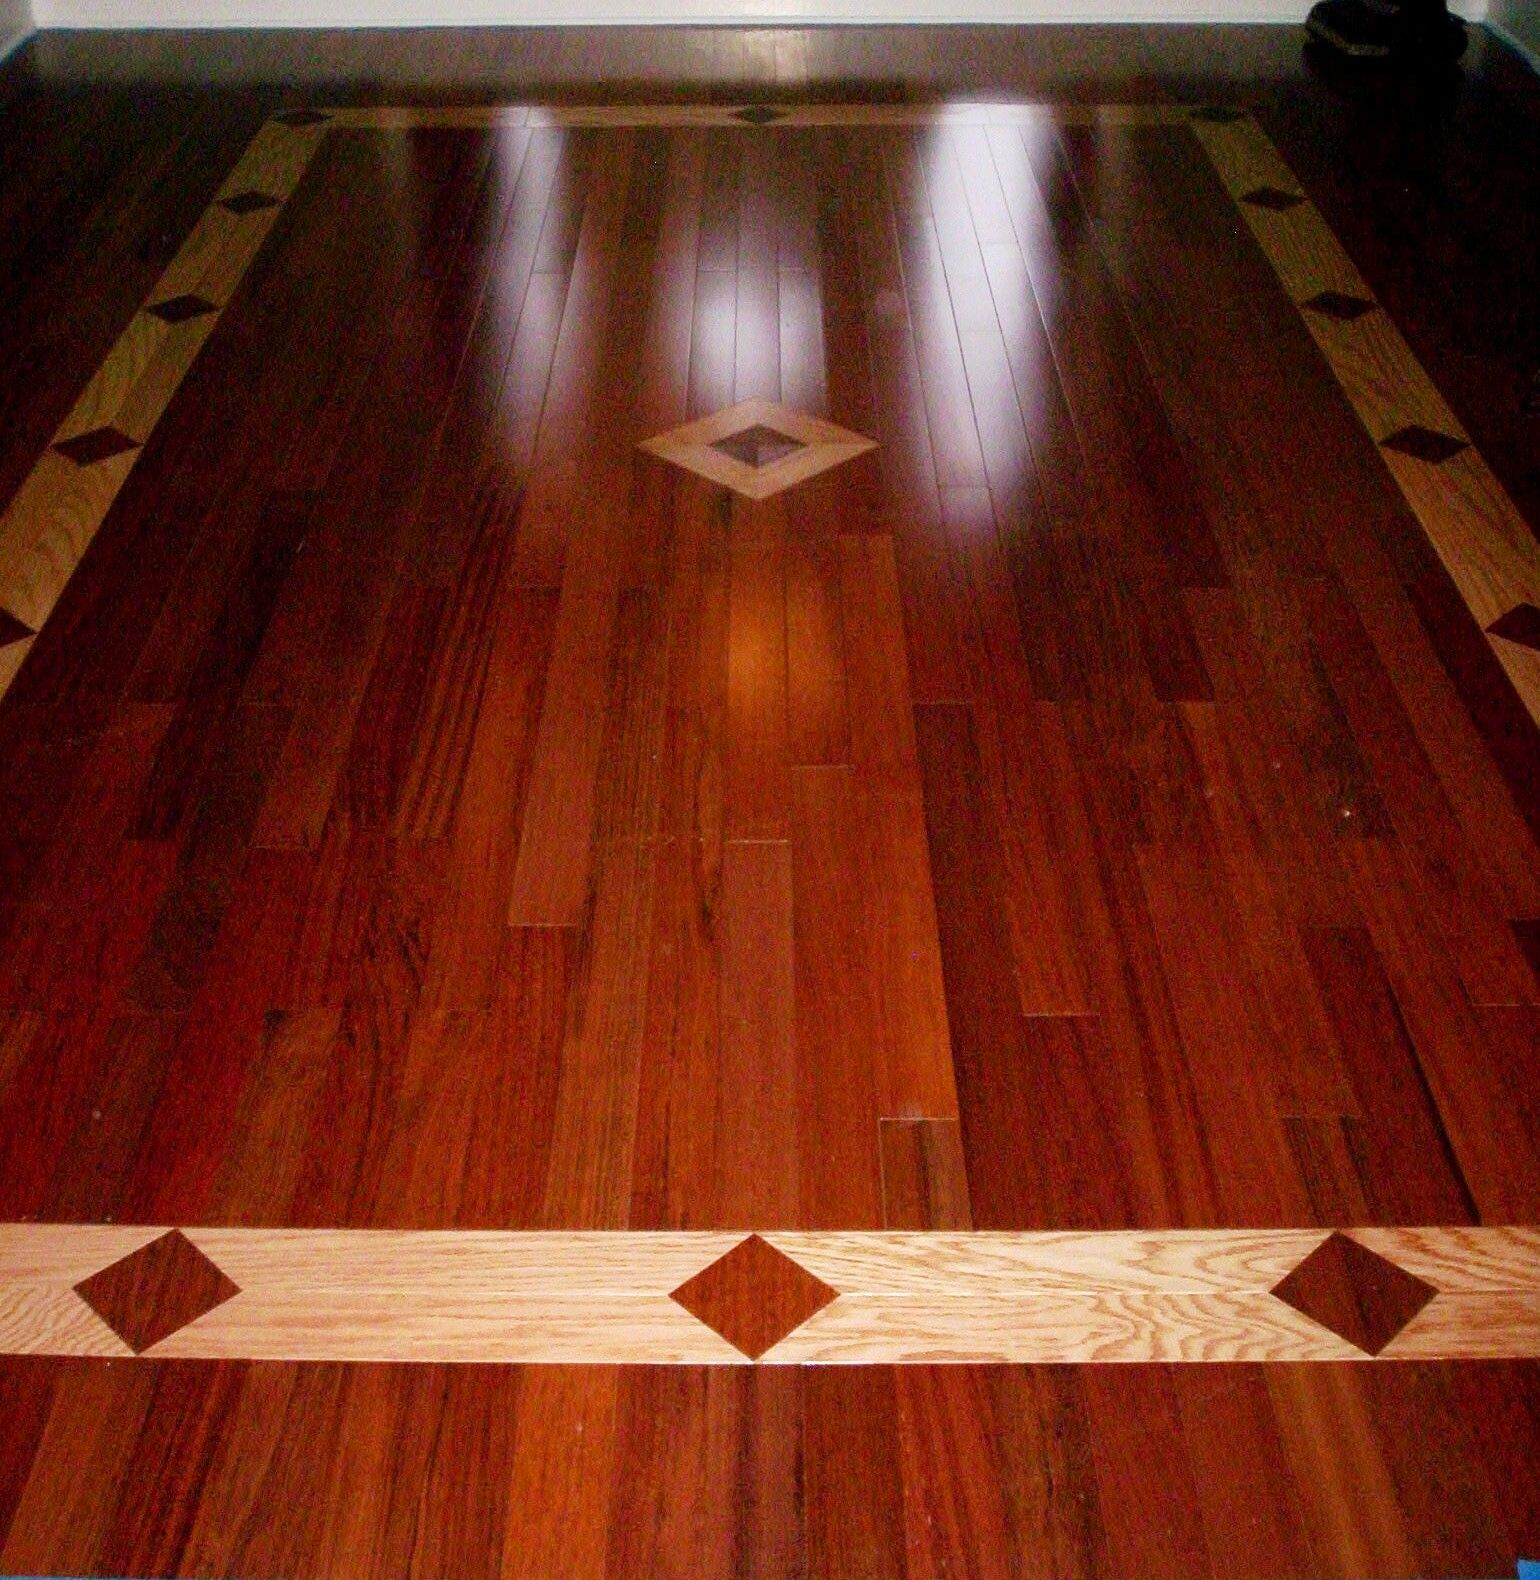 Brazilian cherry hardwood floor with a red oak inlay Wood floor design ideas pictures